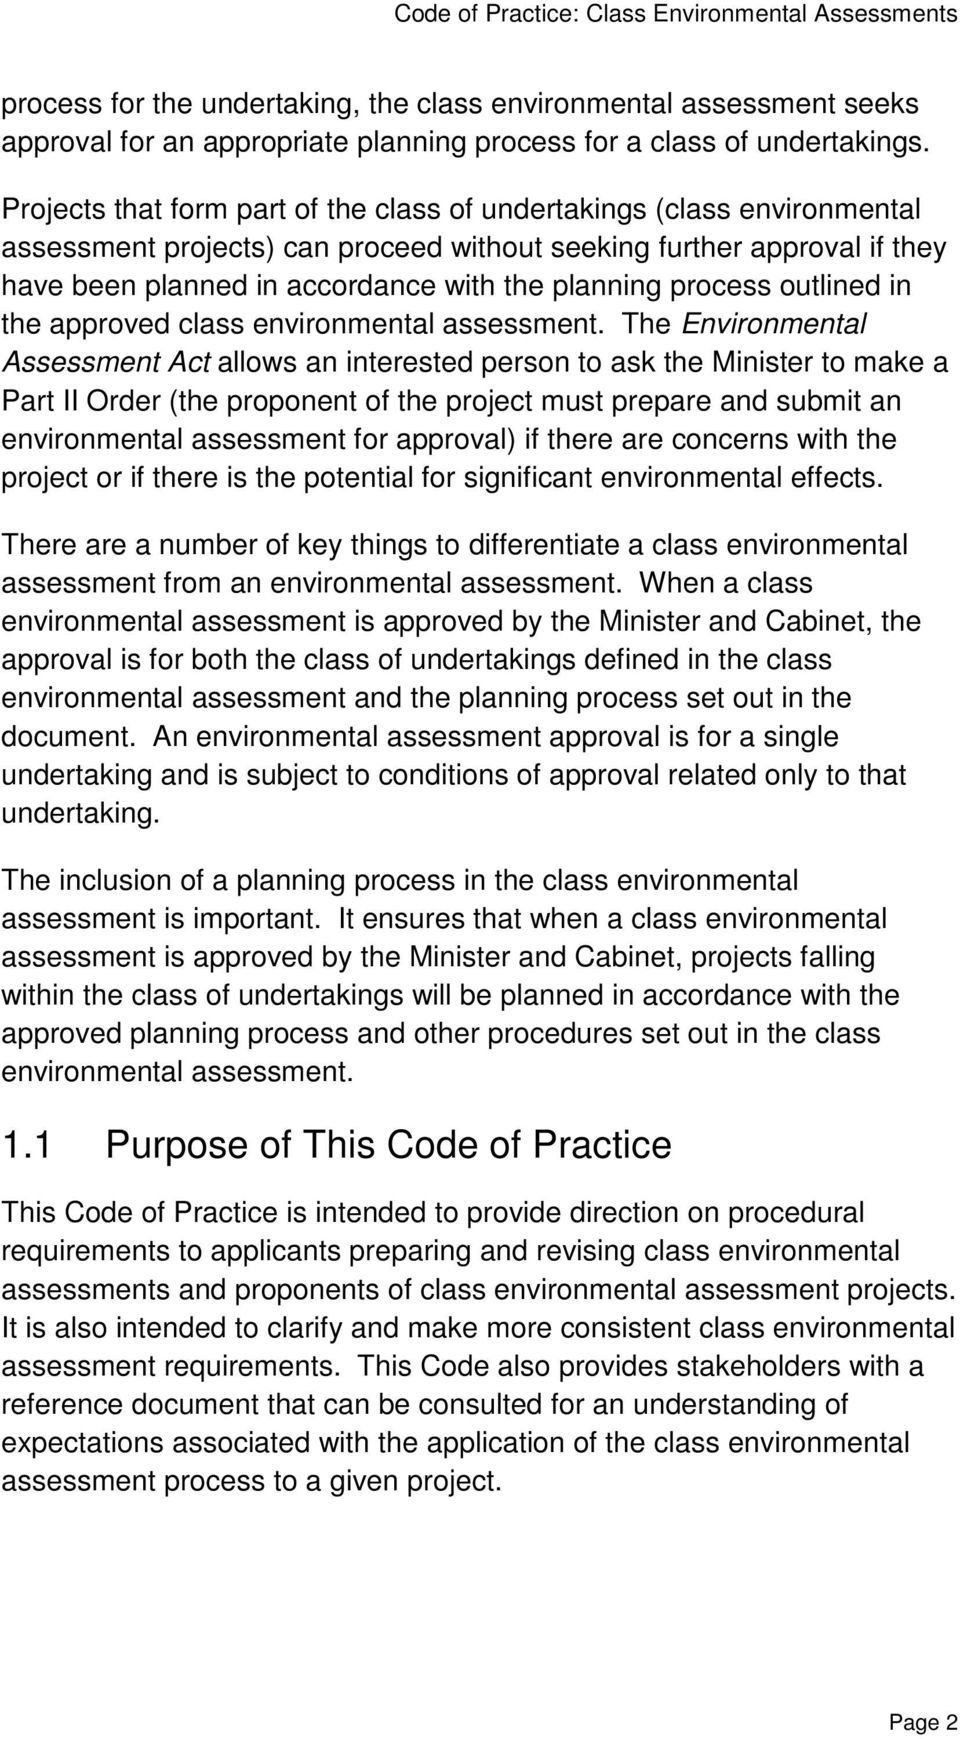 process outlined in the approved class environmental assessment.